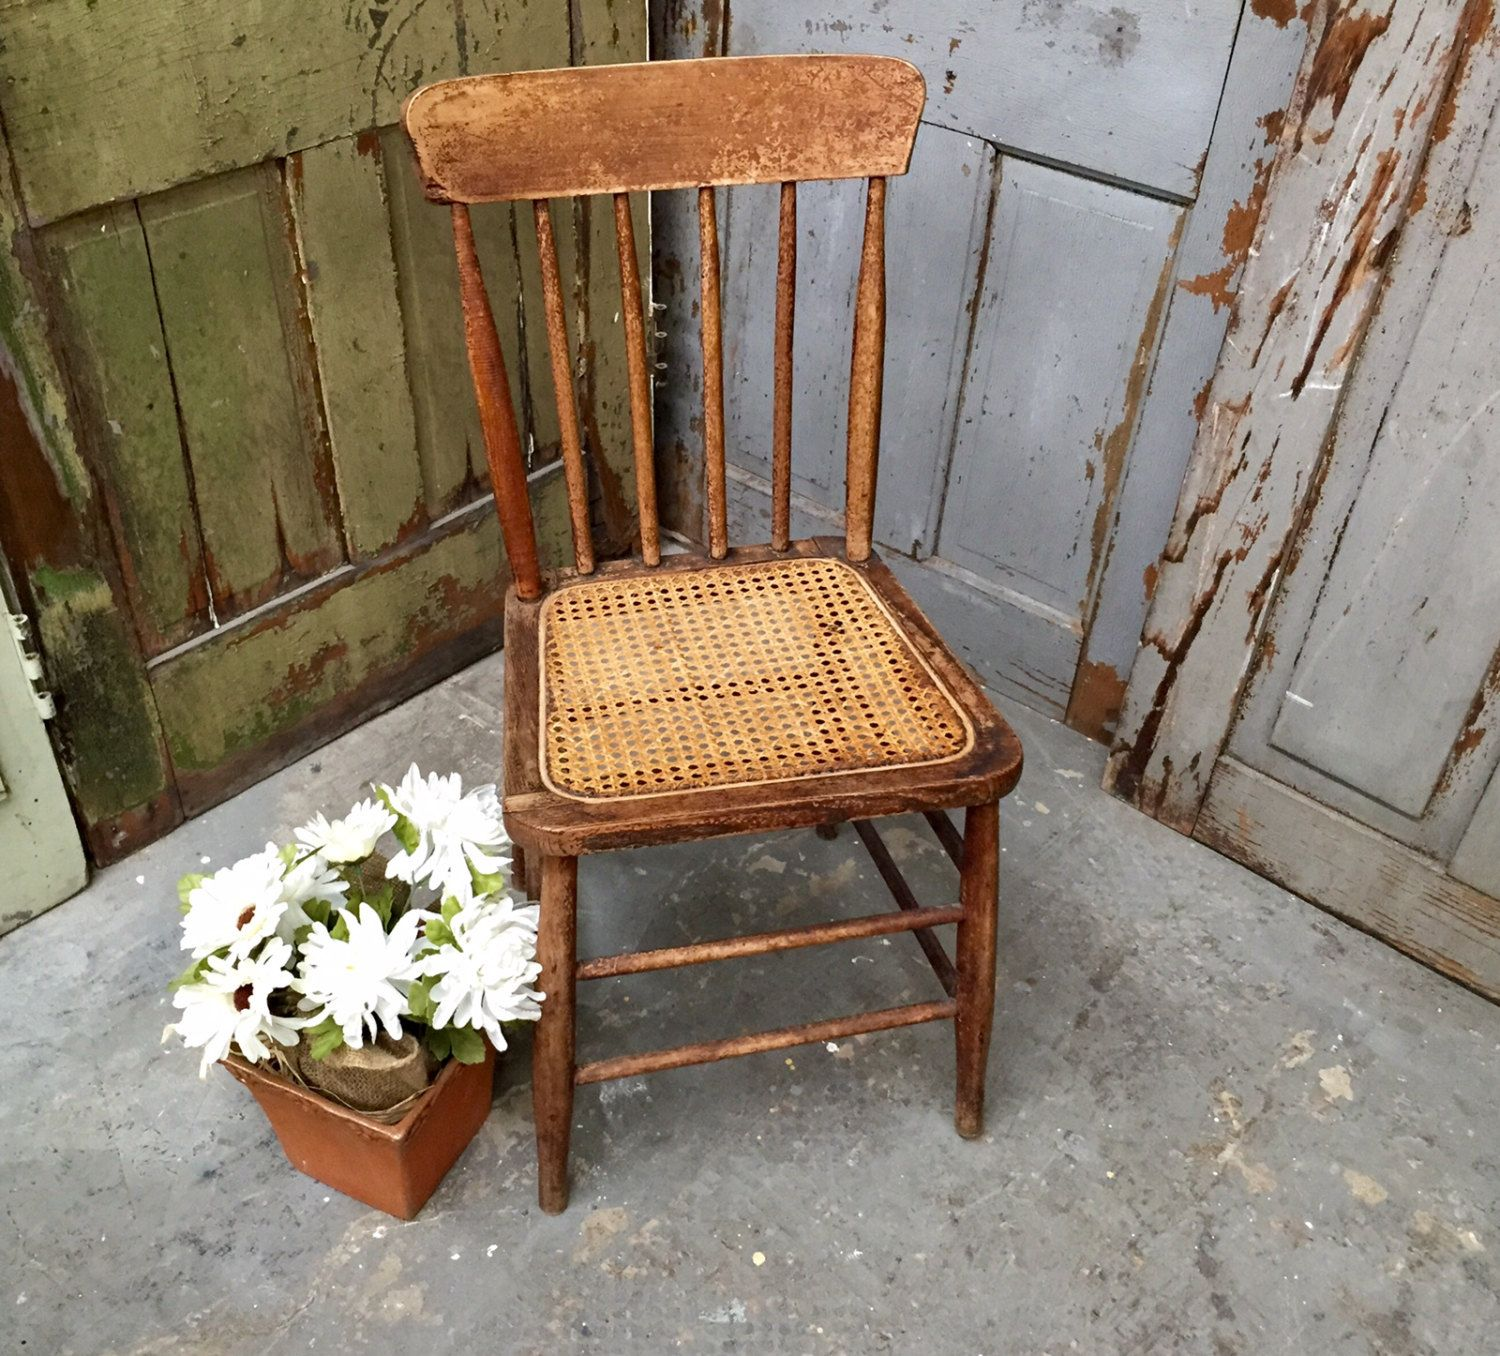 Rustic Chair Cane Seat Chair Vintage Wooden Chair Brown Accent